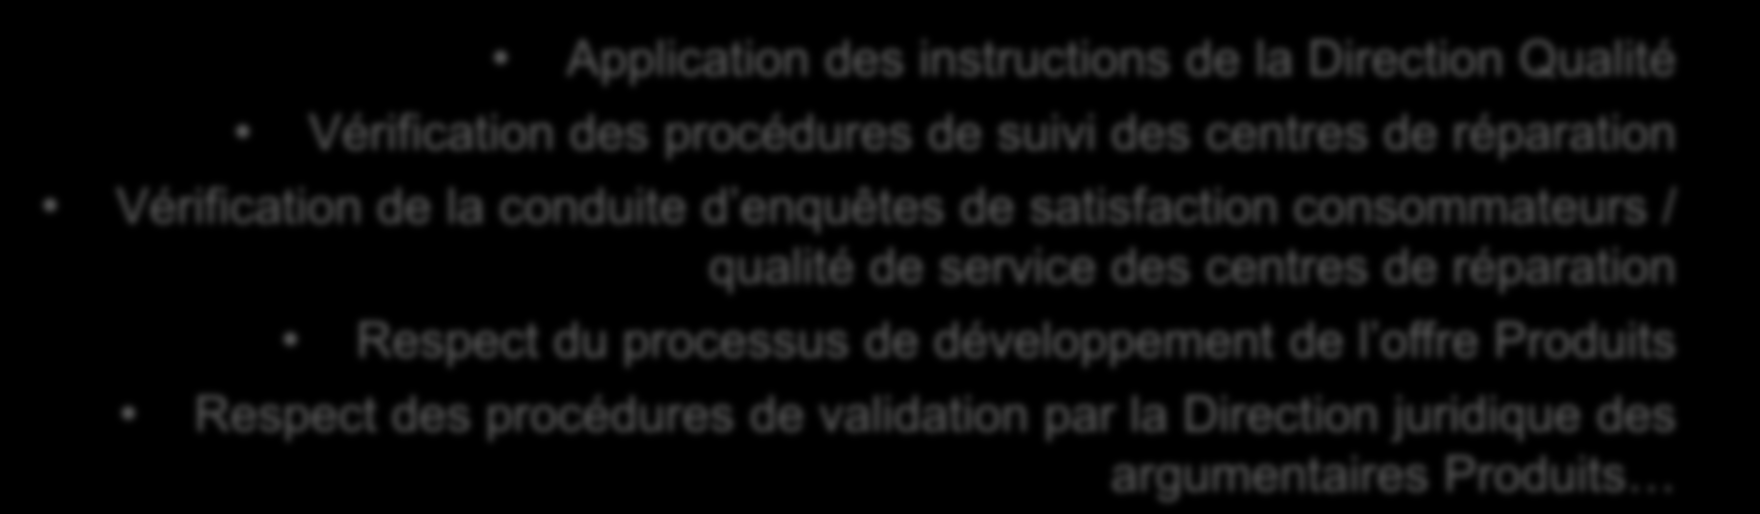 Des exemples de tests conduits RESPECT DU CONSOMMATEUR Application des instructions de la Direction Qualité Vérification des procédures de suivi des centres de réparation Vérification de la conduite